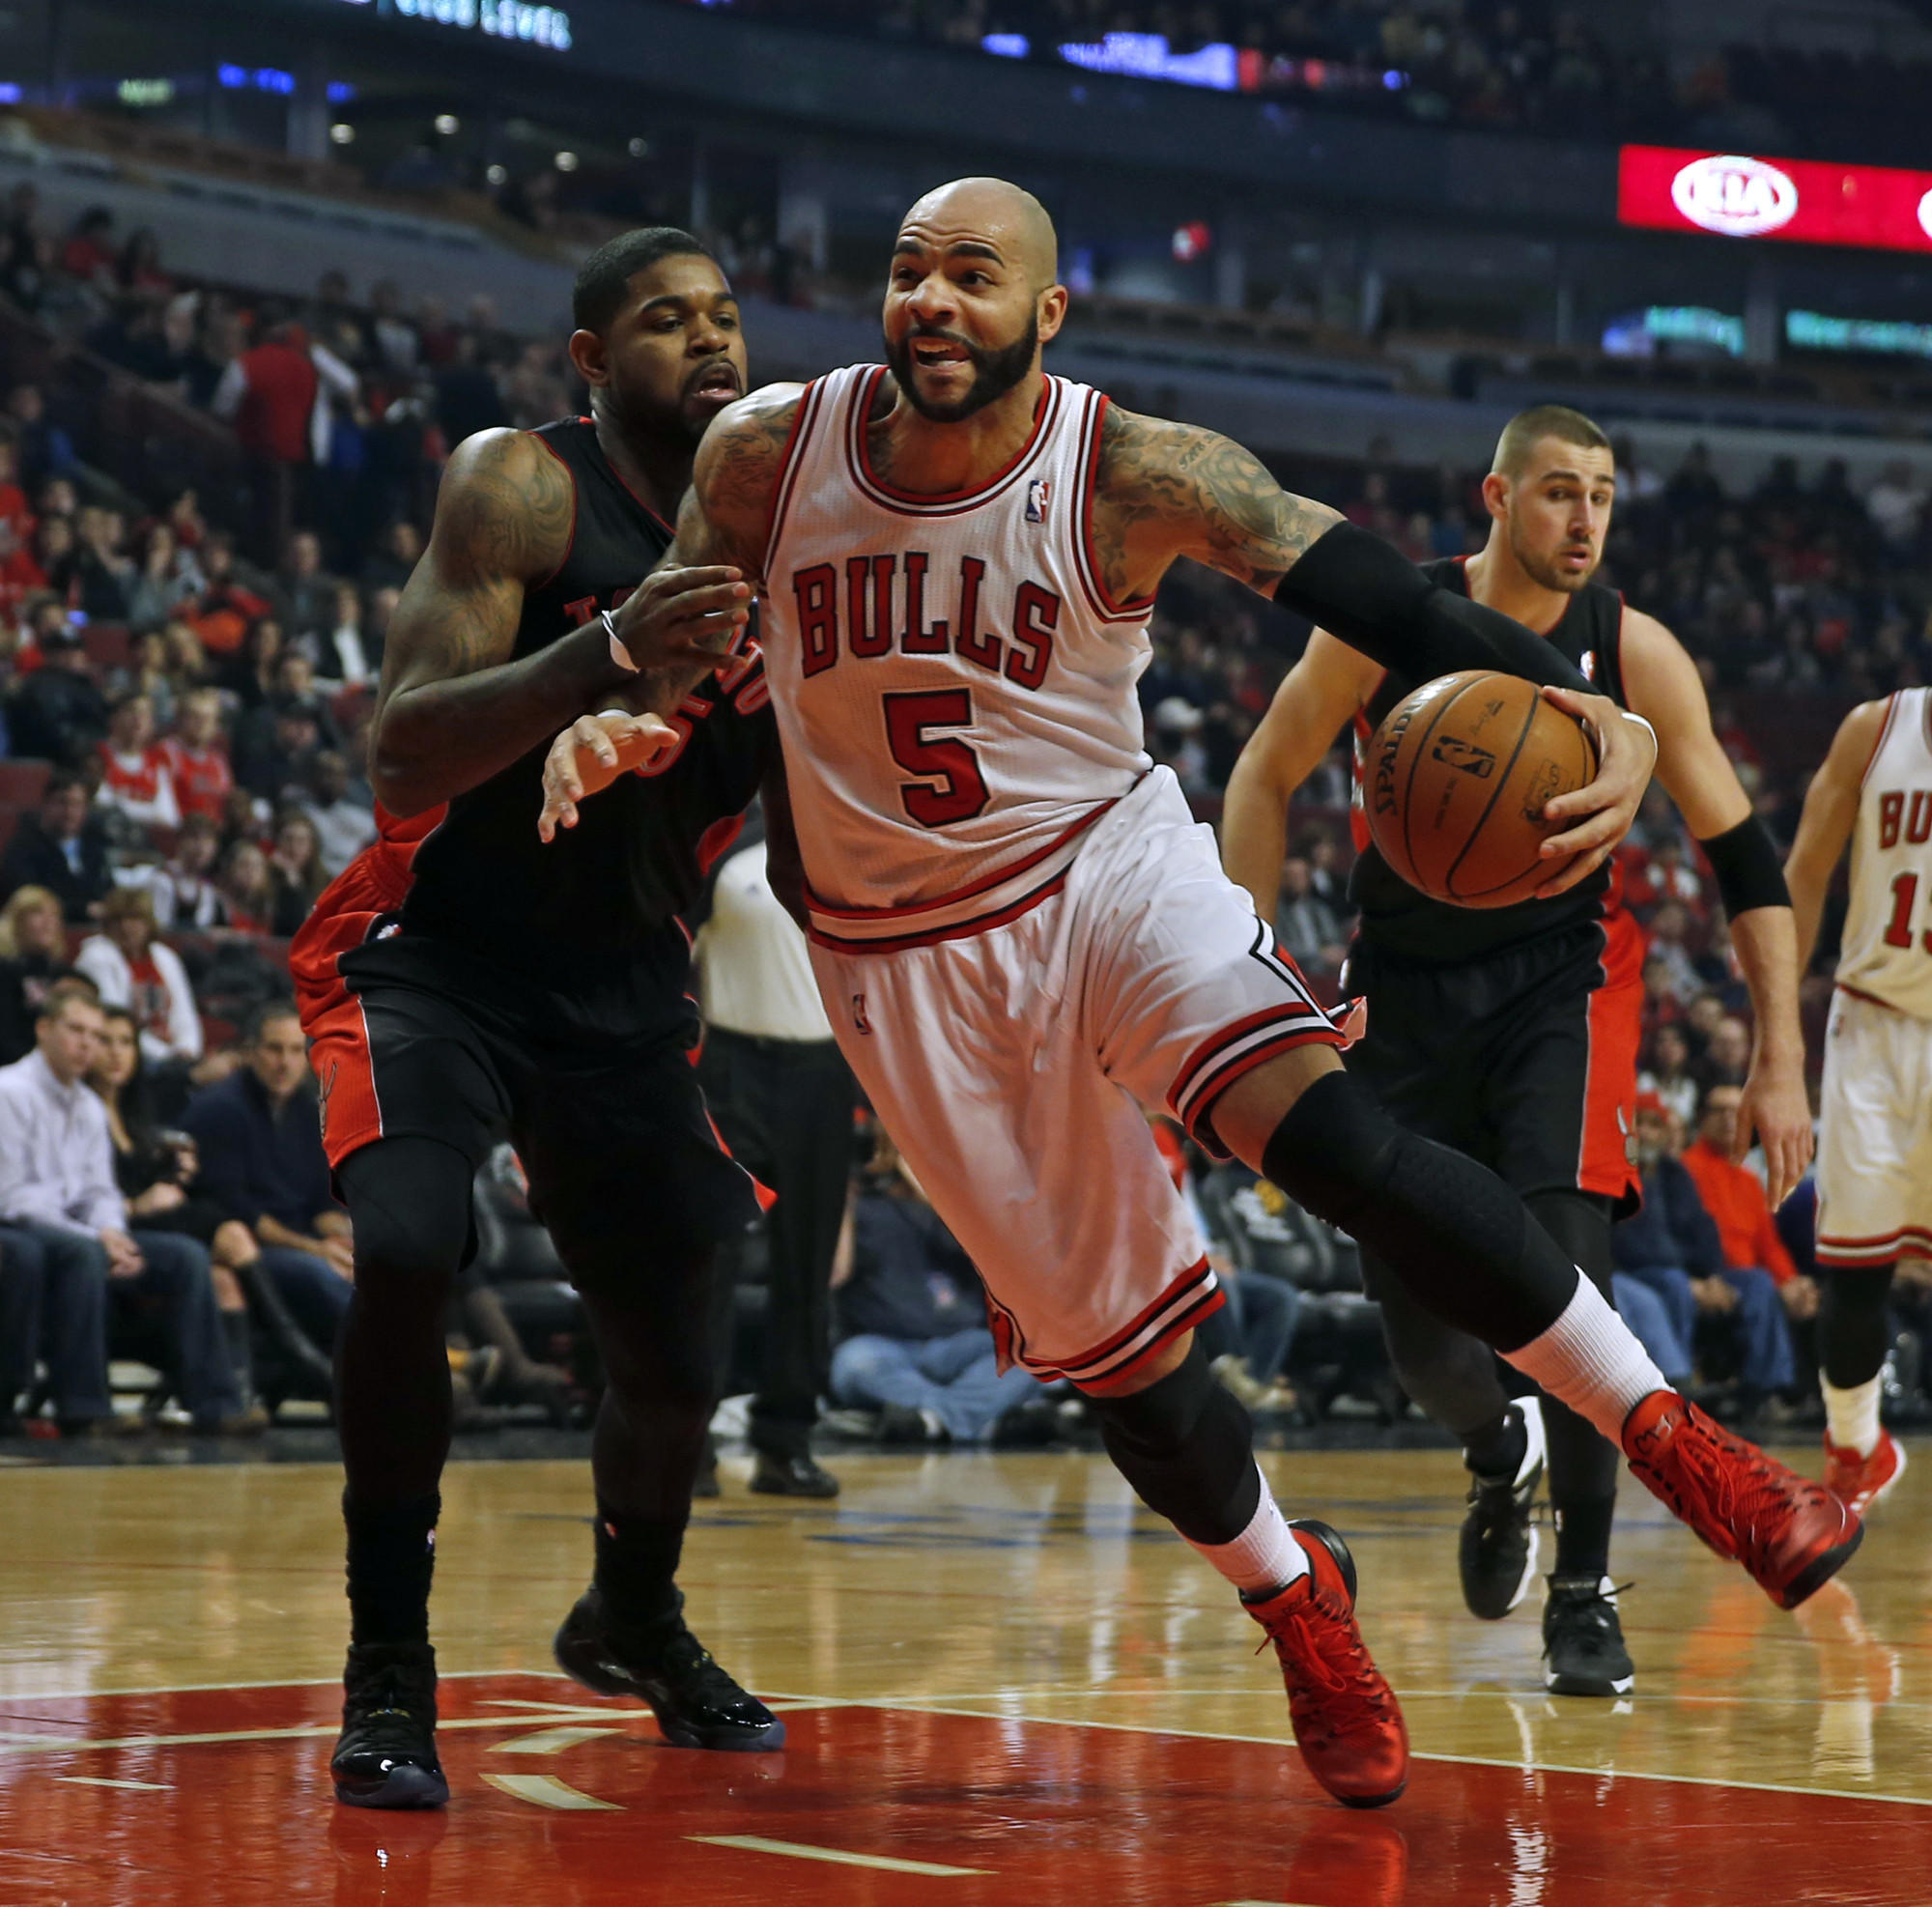 Chicago Bulls' Carlos Boozer drives past Toronto Raptors' Amir Johnson on Dec. 31.